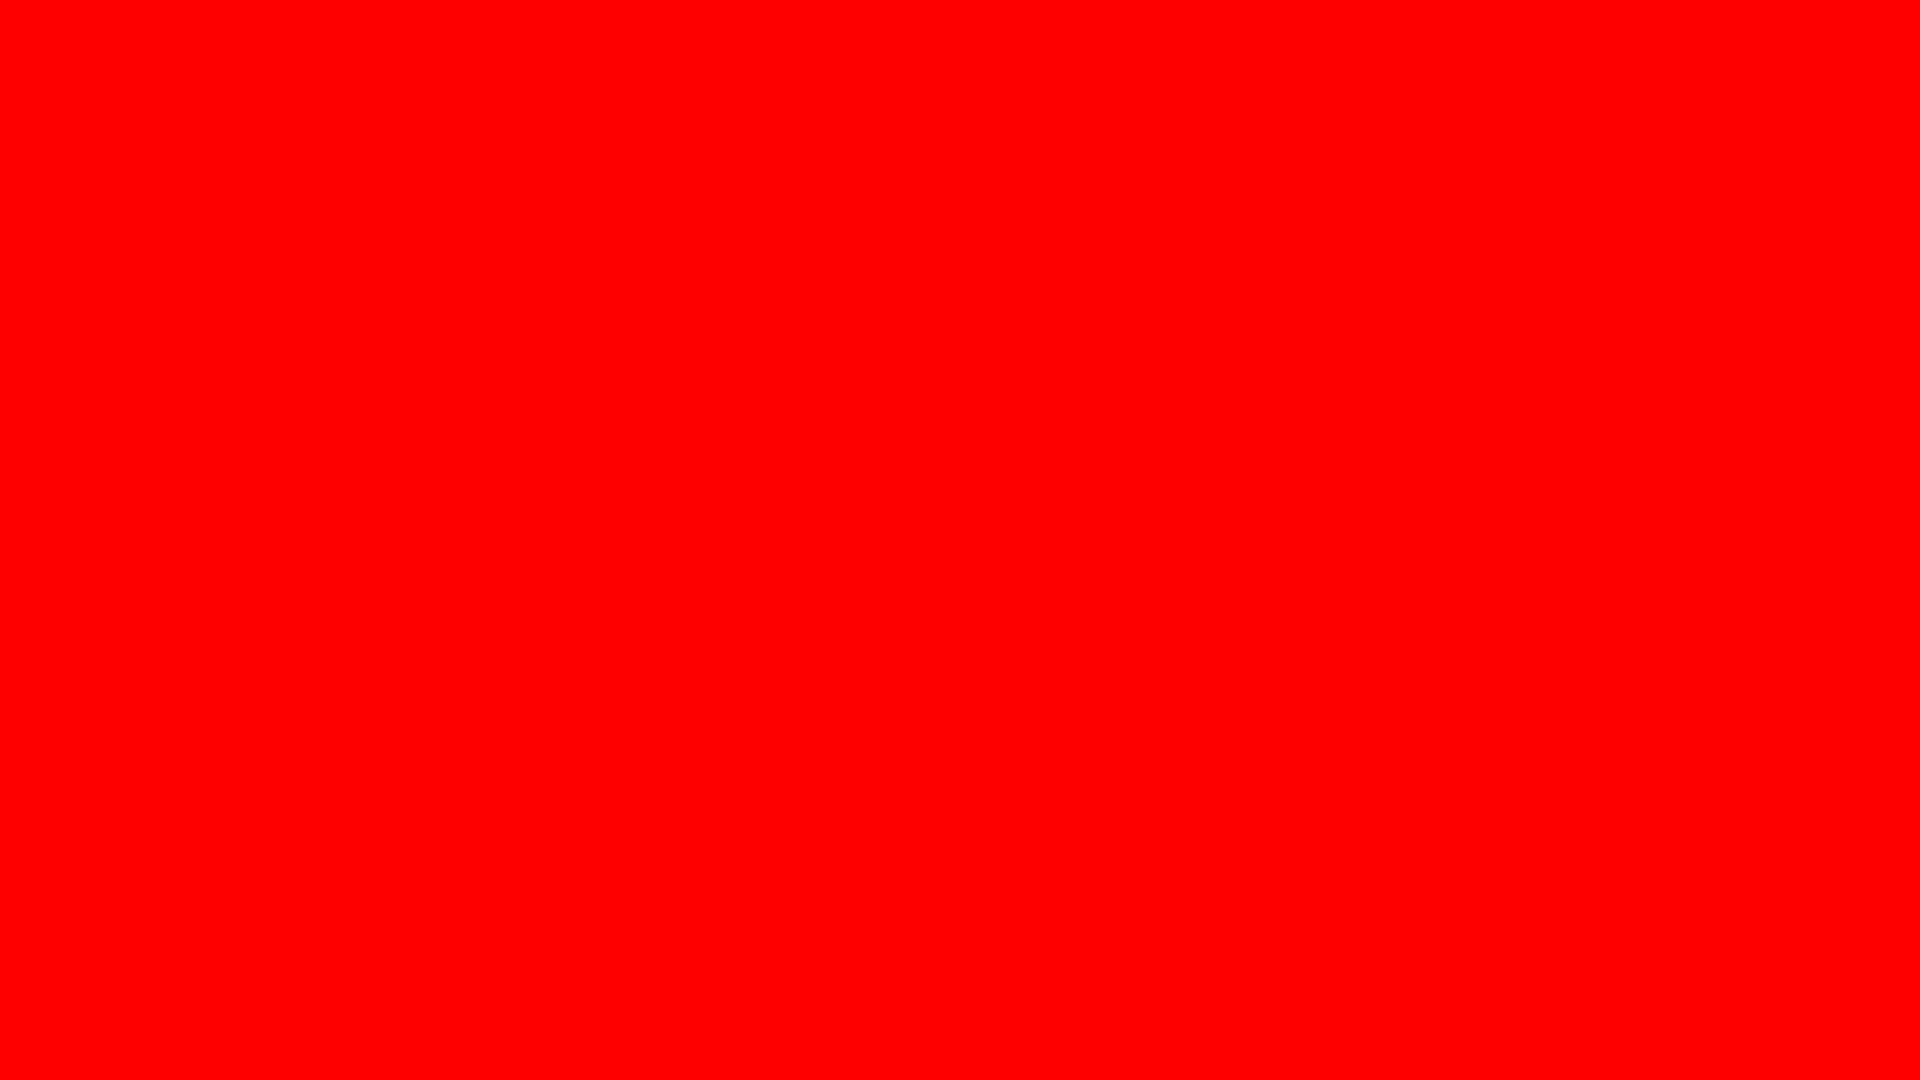 Red Solid Color Backgrounds PC, Android, iPhone and iPad. Wallpapers .